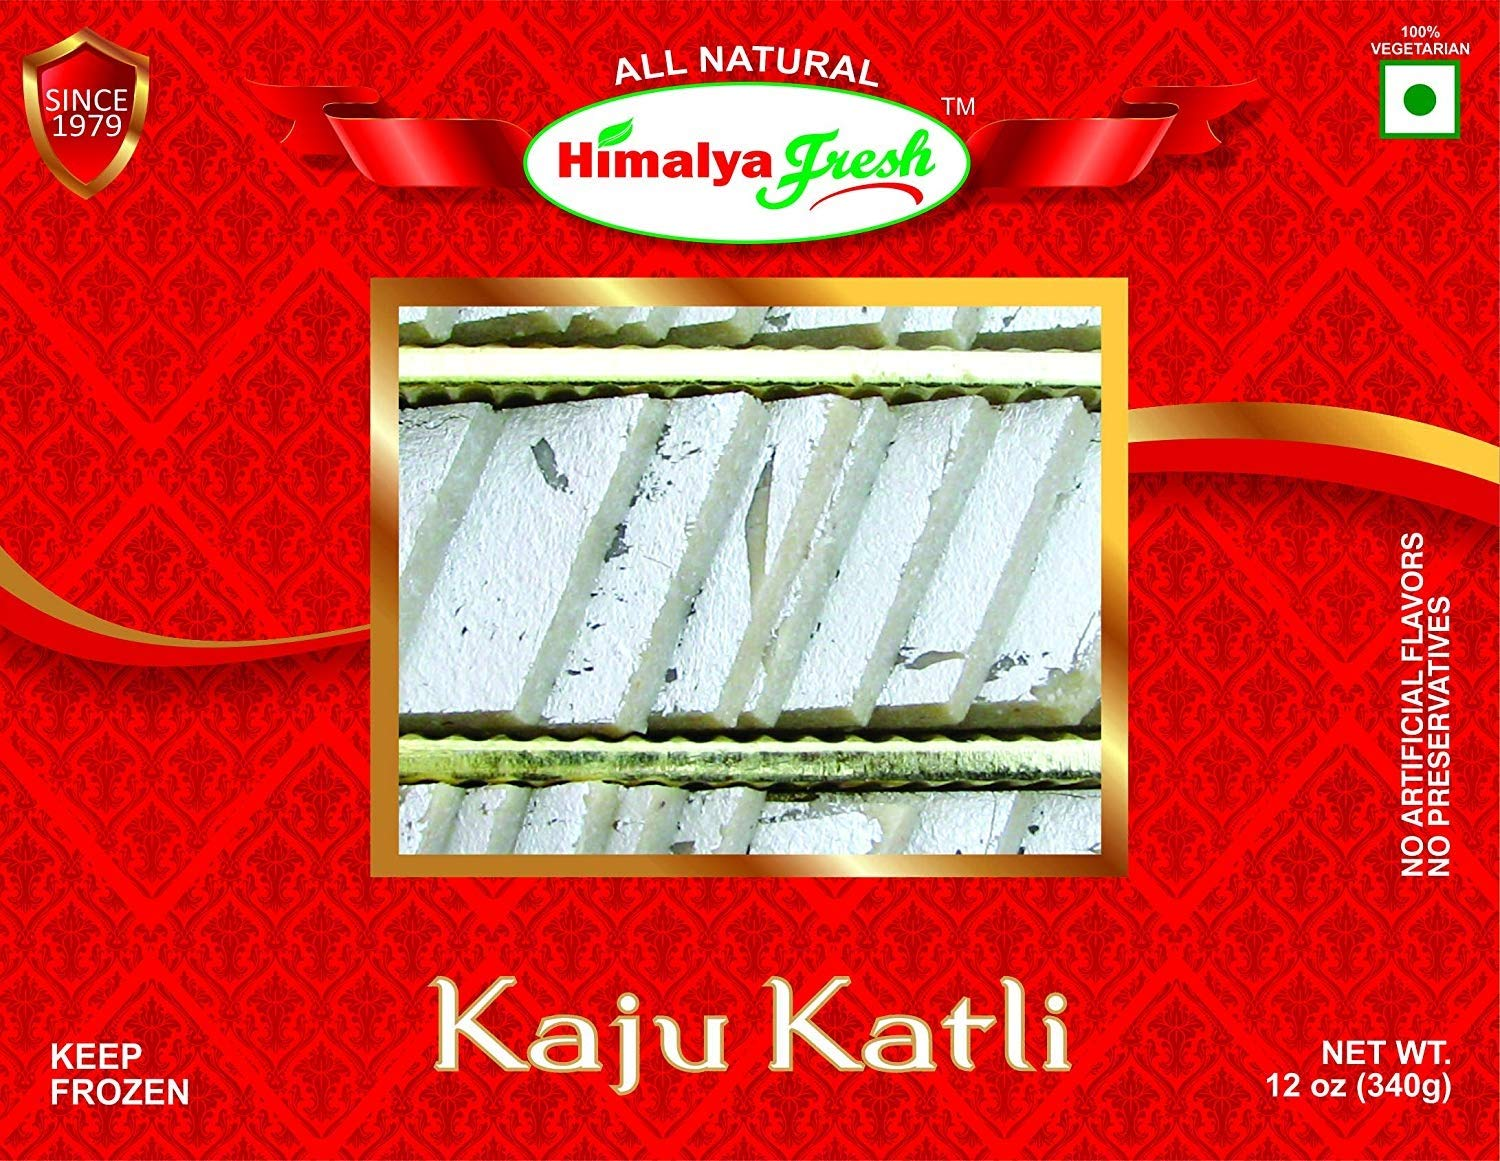 HIMALYA FRESH Kaju Katli 12oz - Premium Authentic Indian Food & Sweets Made With Cashew Nuts. Just two ingredients Cashew Nuts and sugar - No Fillers Or Preservatives (2 Boxes)